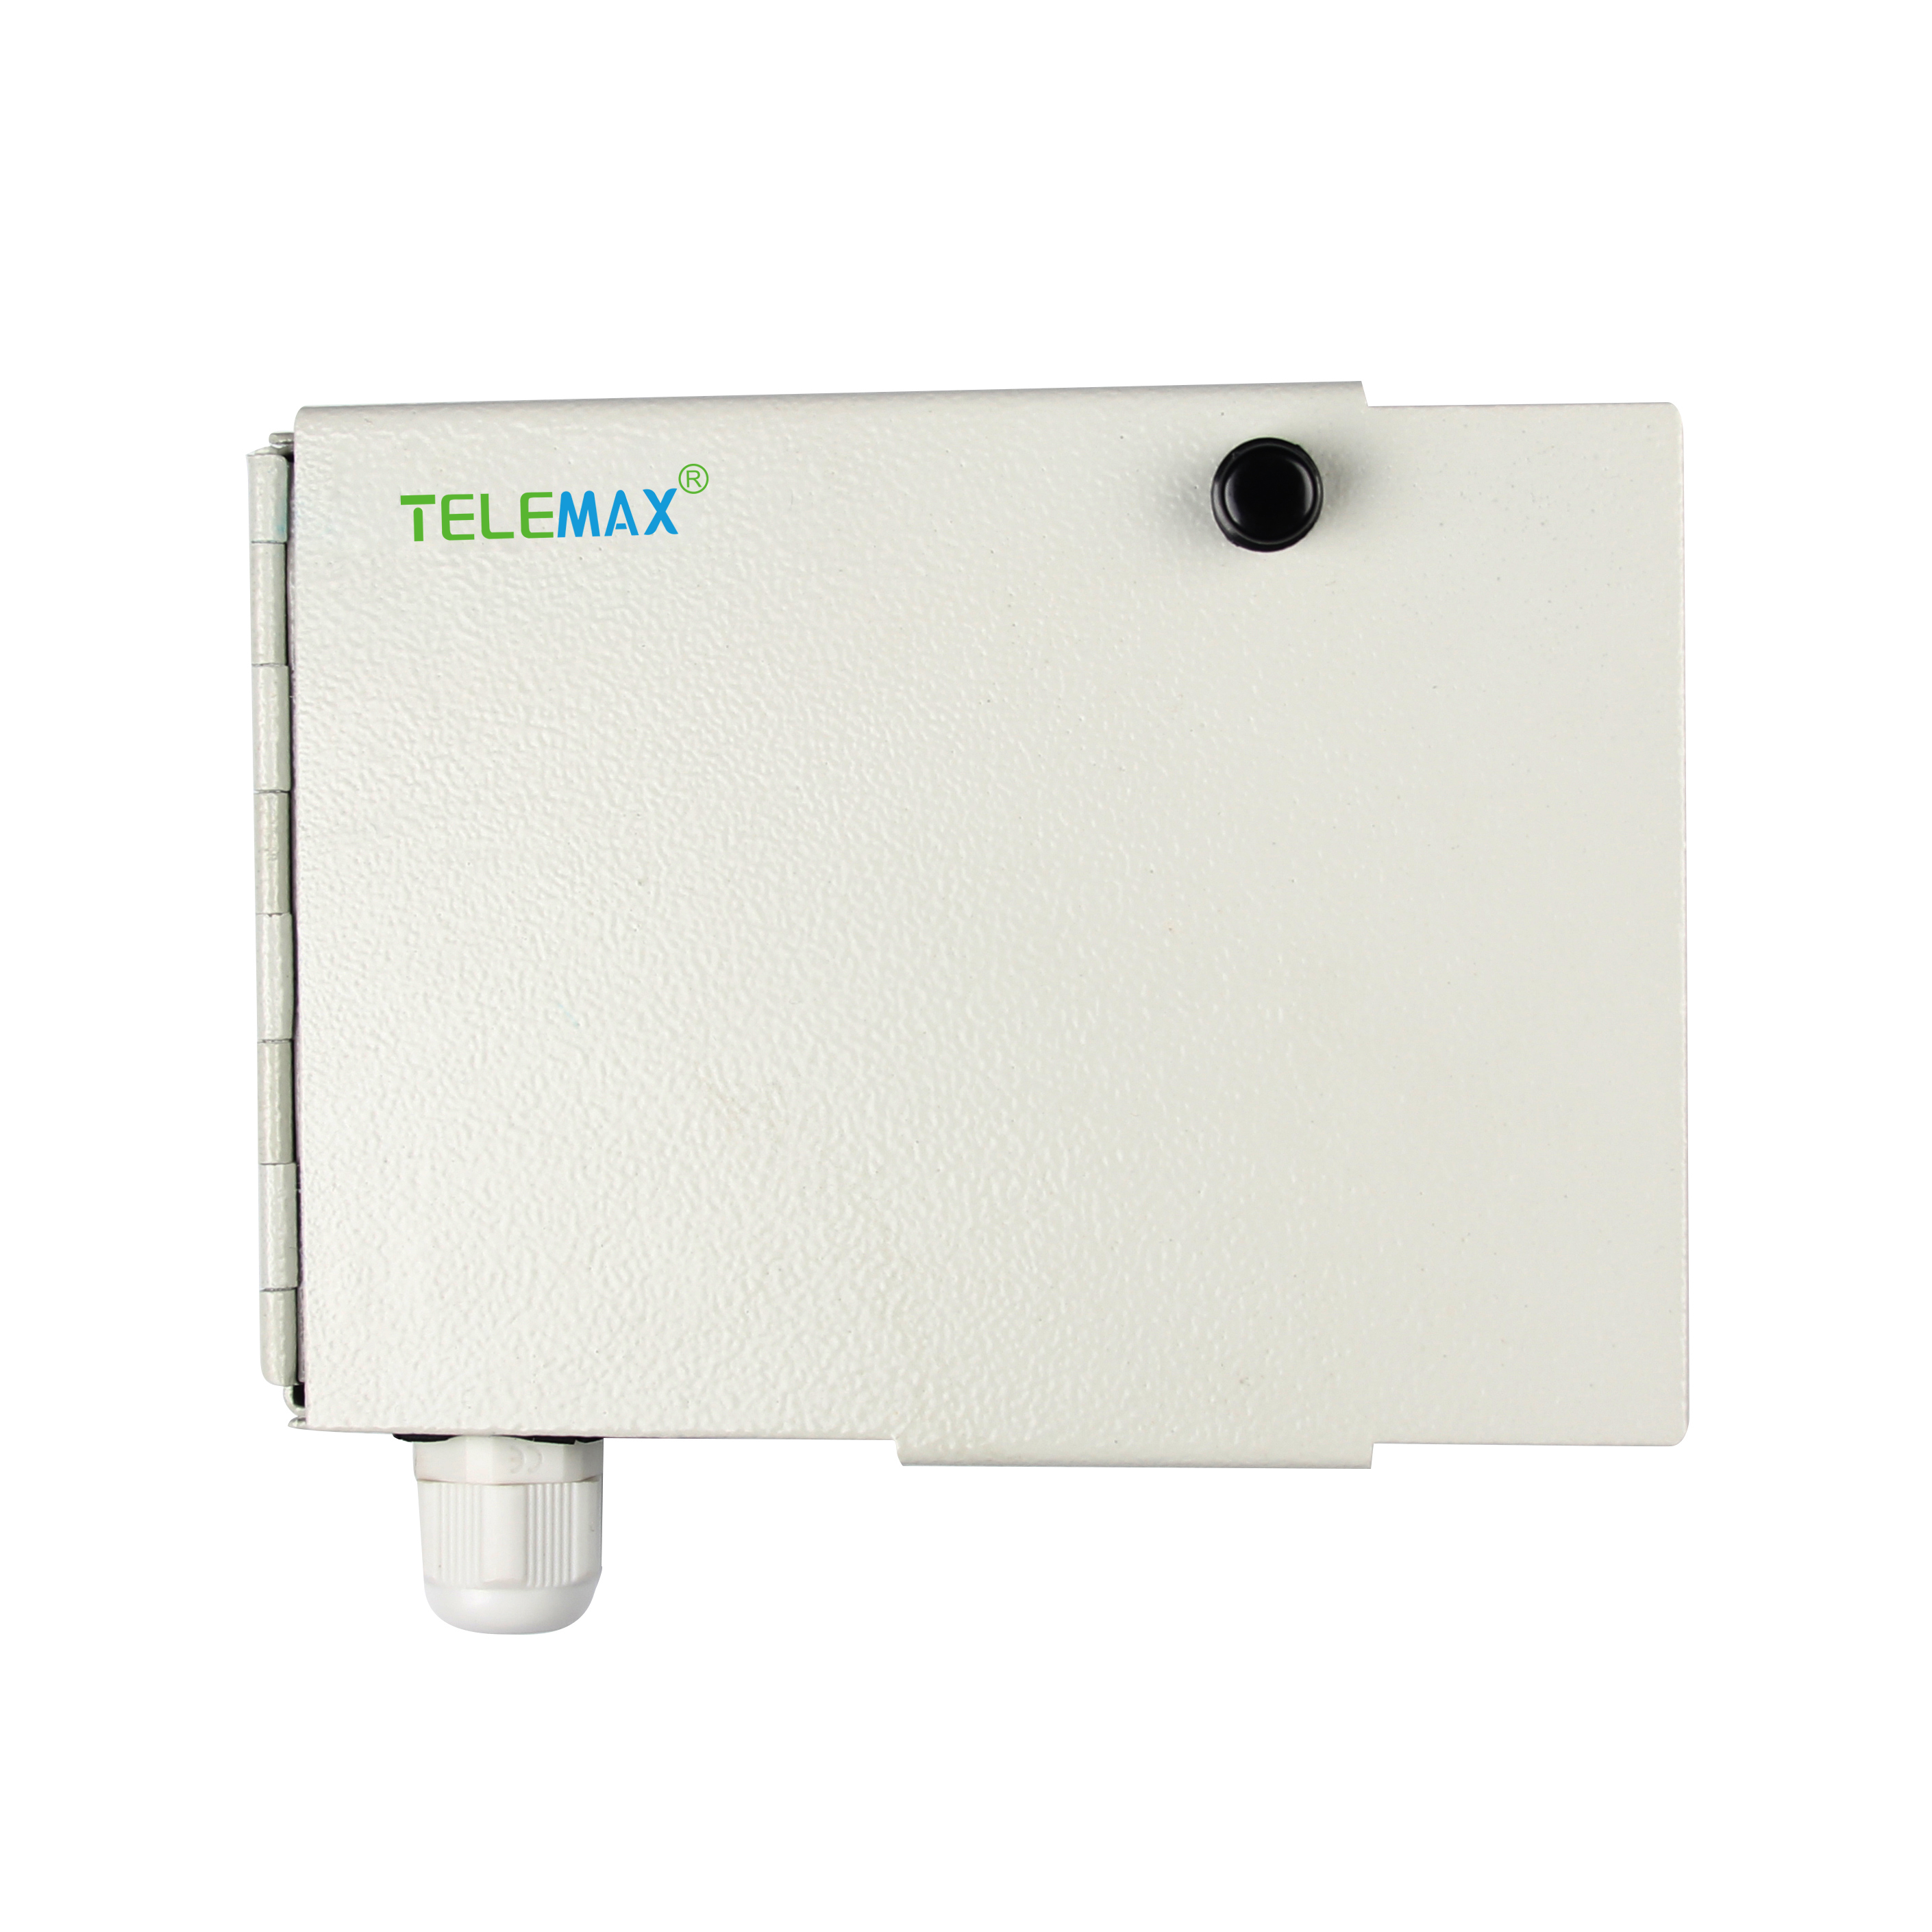 4 Ports FTTH Terminal Box SPCC Material RAL7035 Grey color